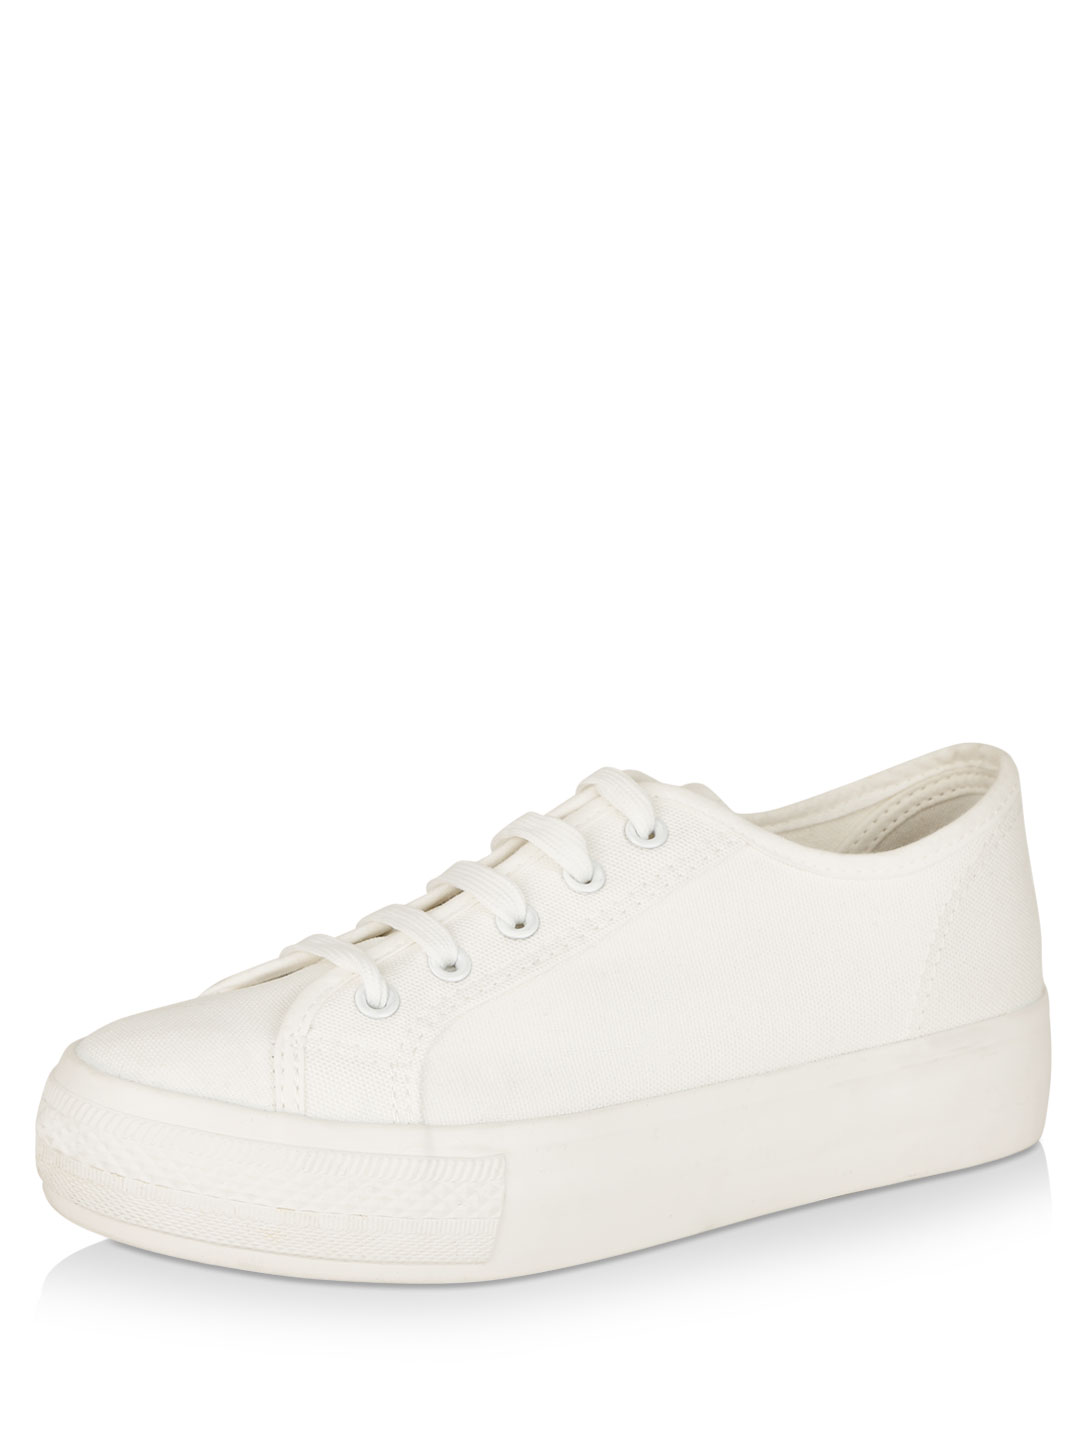 New Look White Double Sole Lace Up Trainers 1